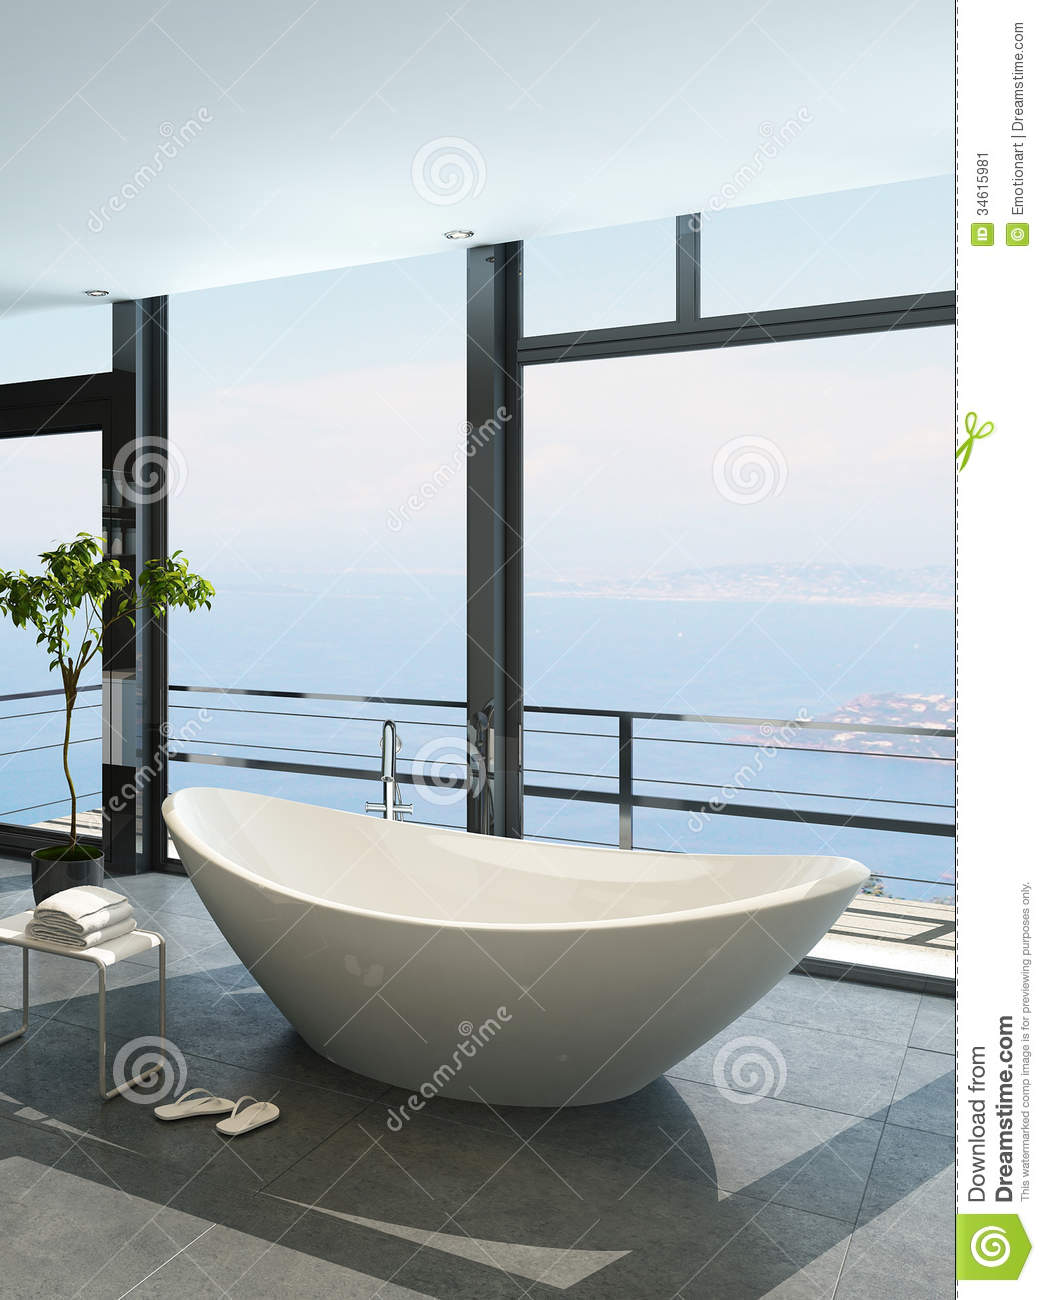 Expensive Luxury Bathtub Against Panoramic Window With Seascape View ...